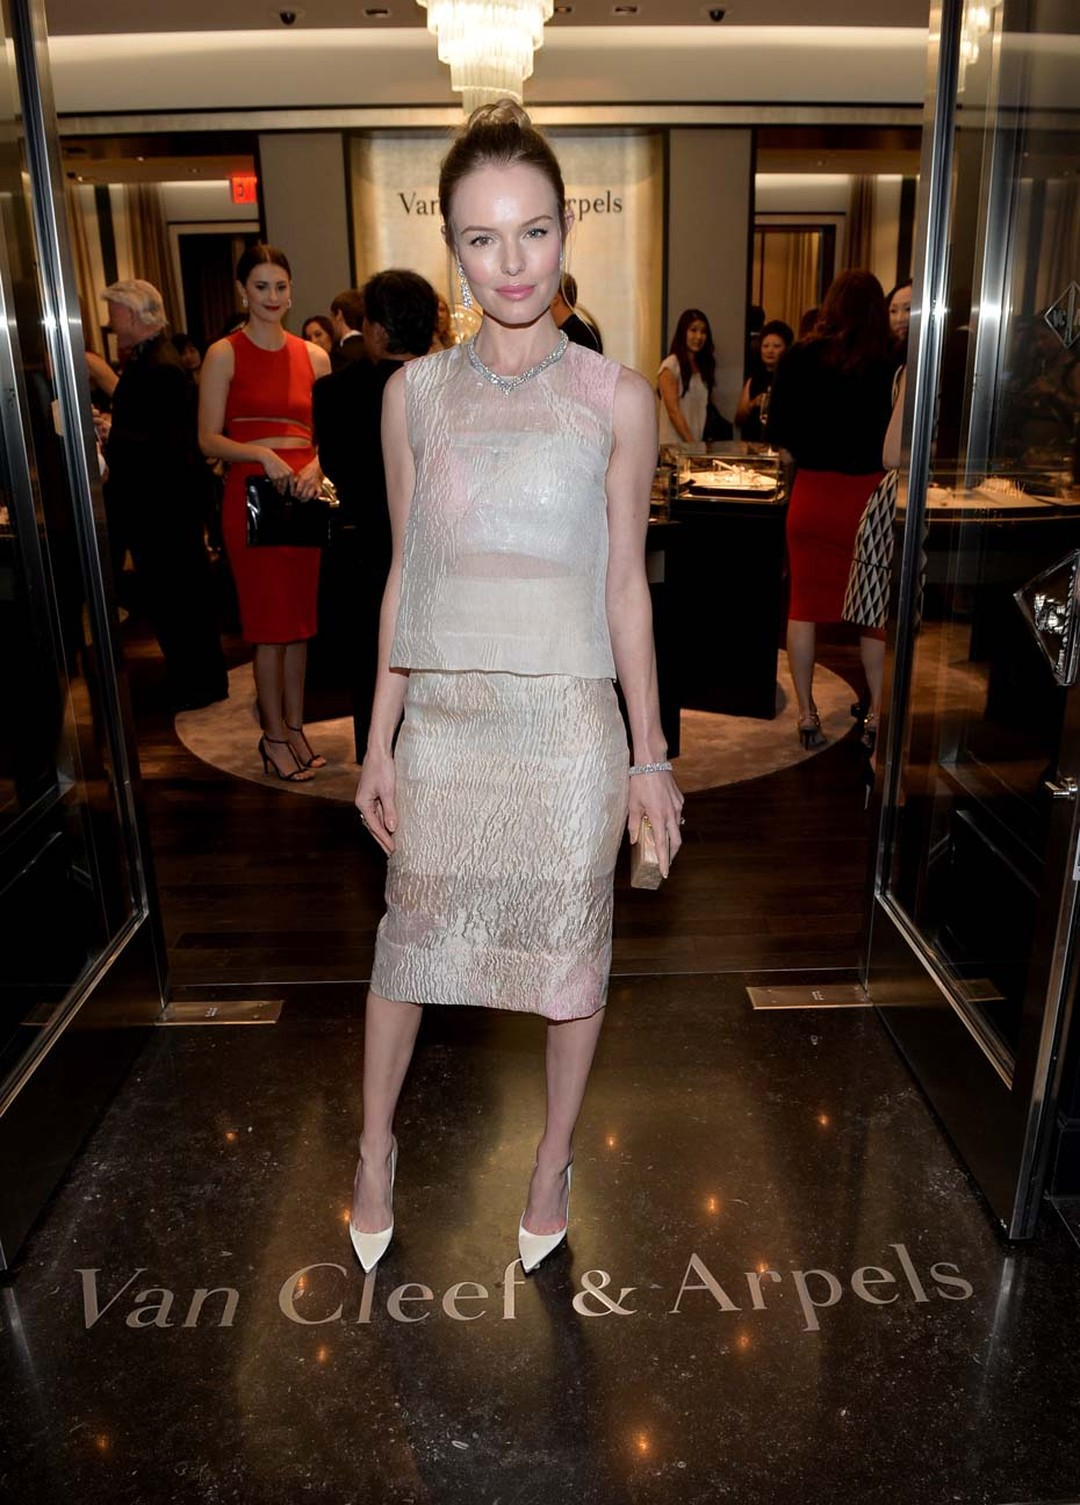 A host of VIP guests, including actress Kate Bosworth, attended the reopening of Van Cleef & Arpels' South Coast Plaza boutique in Orange County